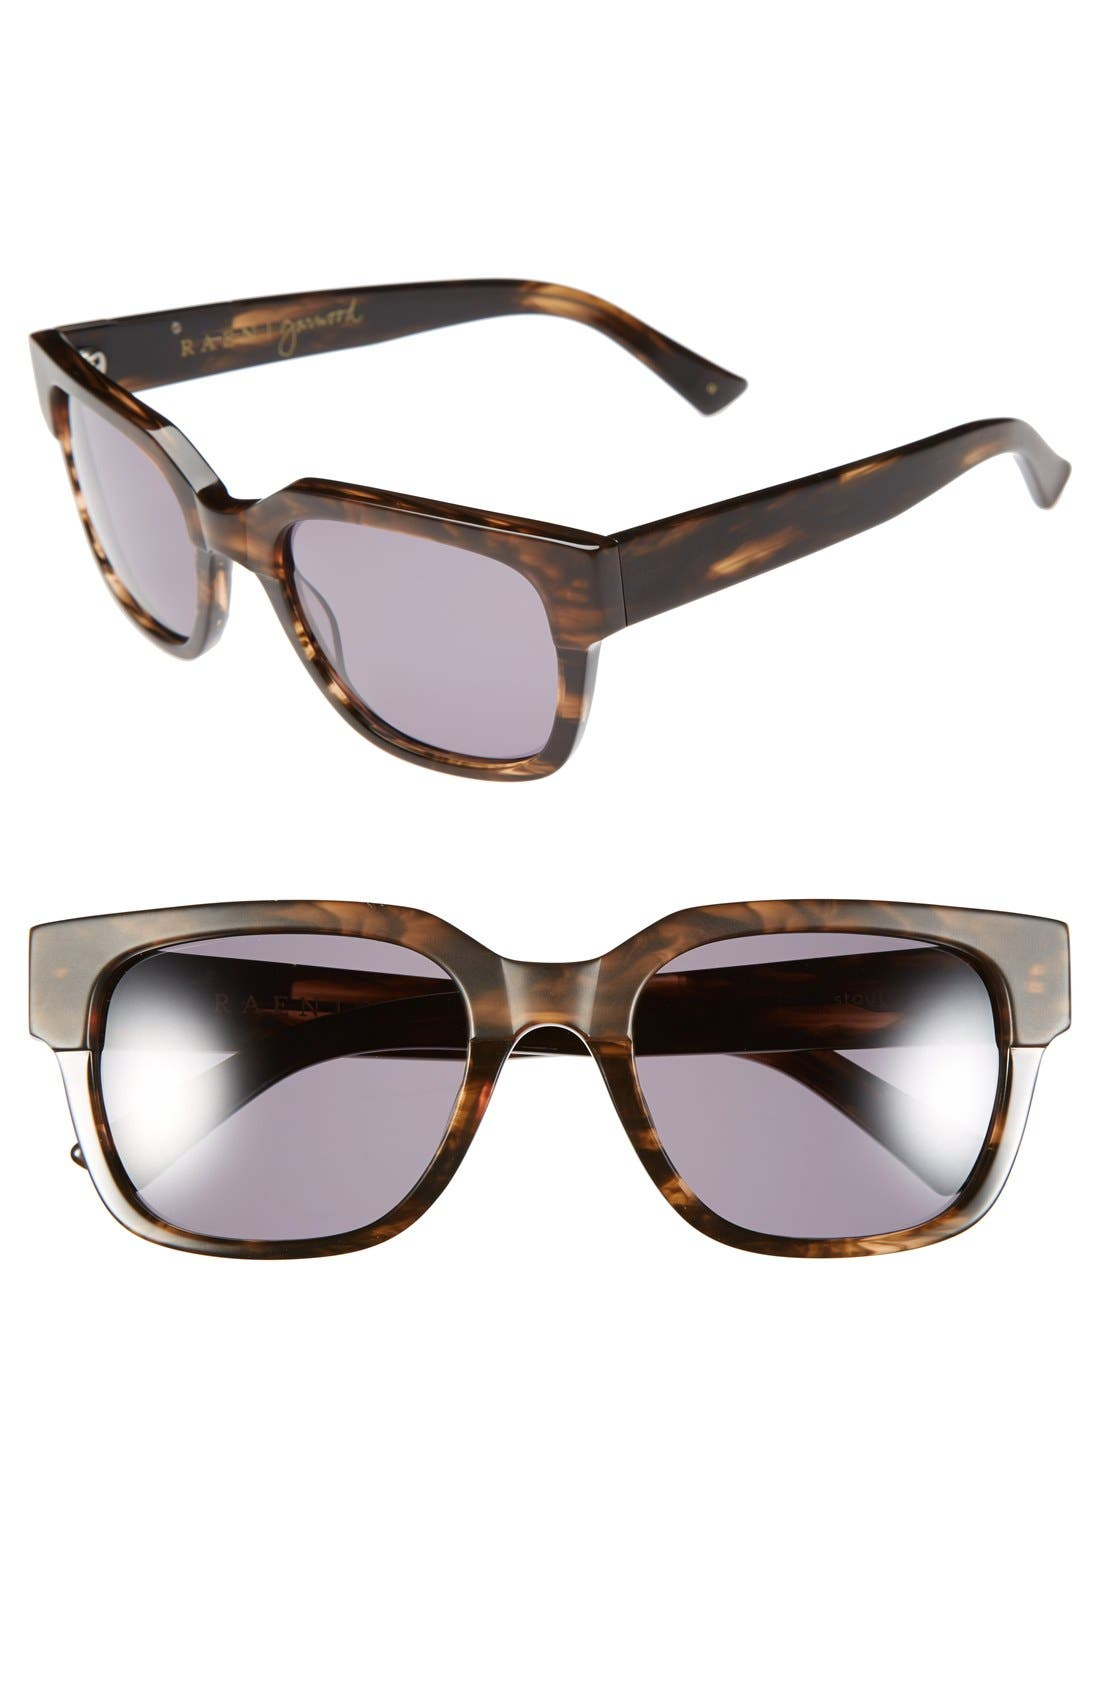 Main Image - RAEN 'Garwood' 55mm Sunglasses